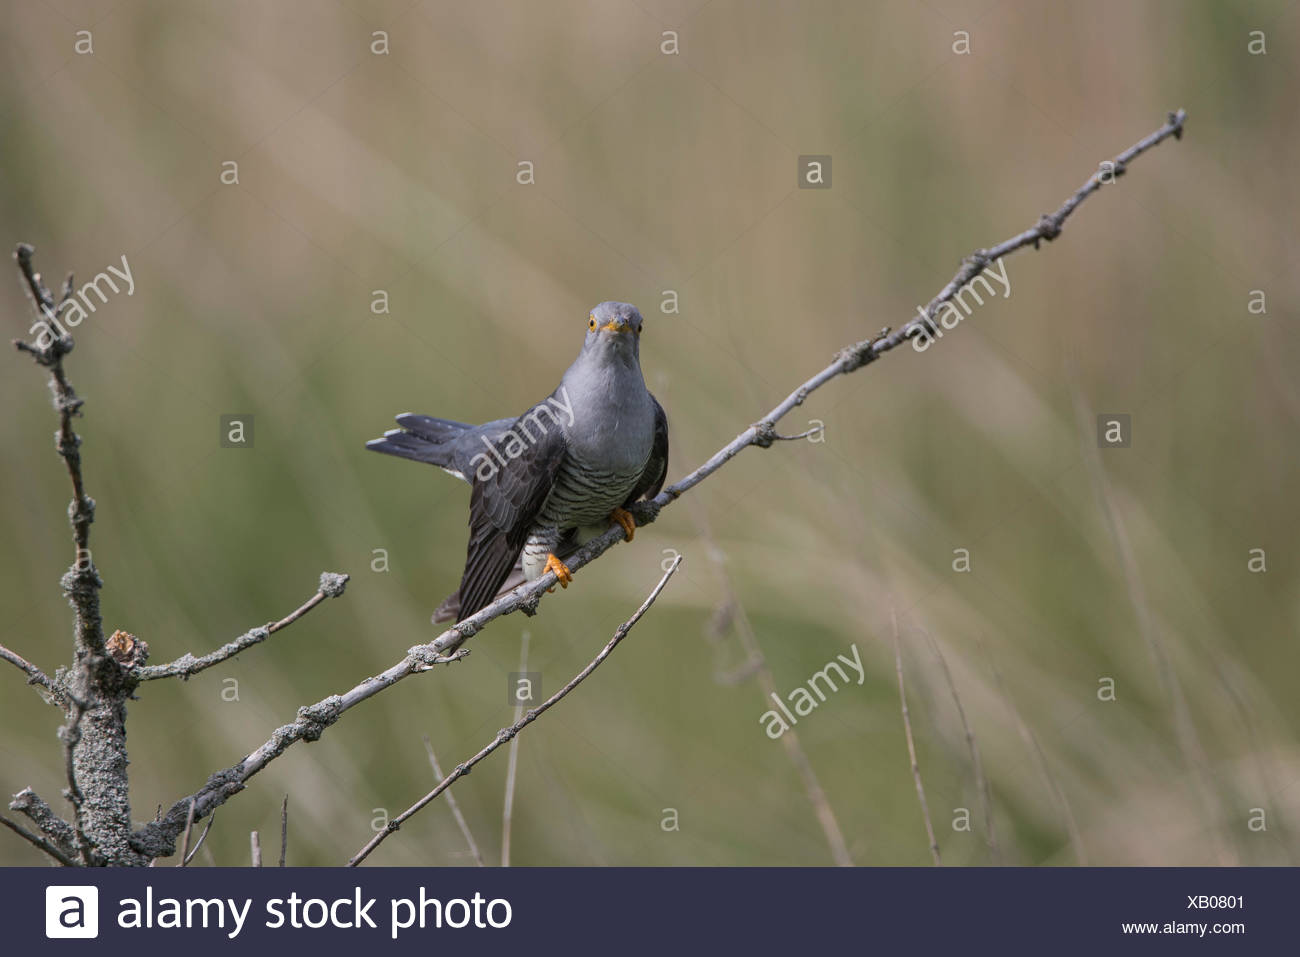 Common Cuckoo, Lower Saxony, Germany, (Cuculus canorus) - Stock Image